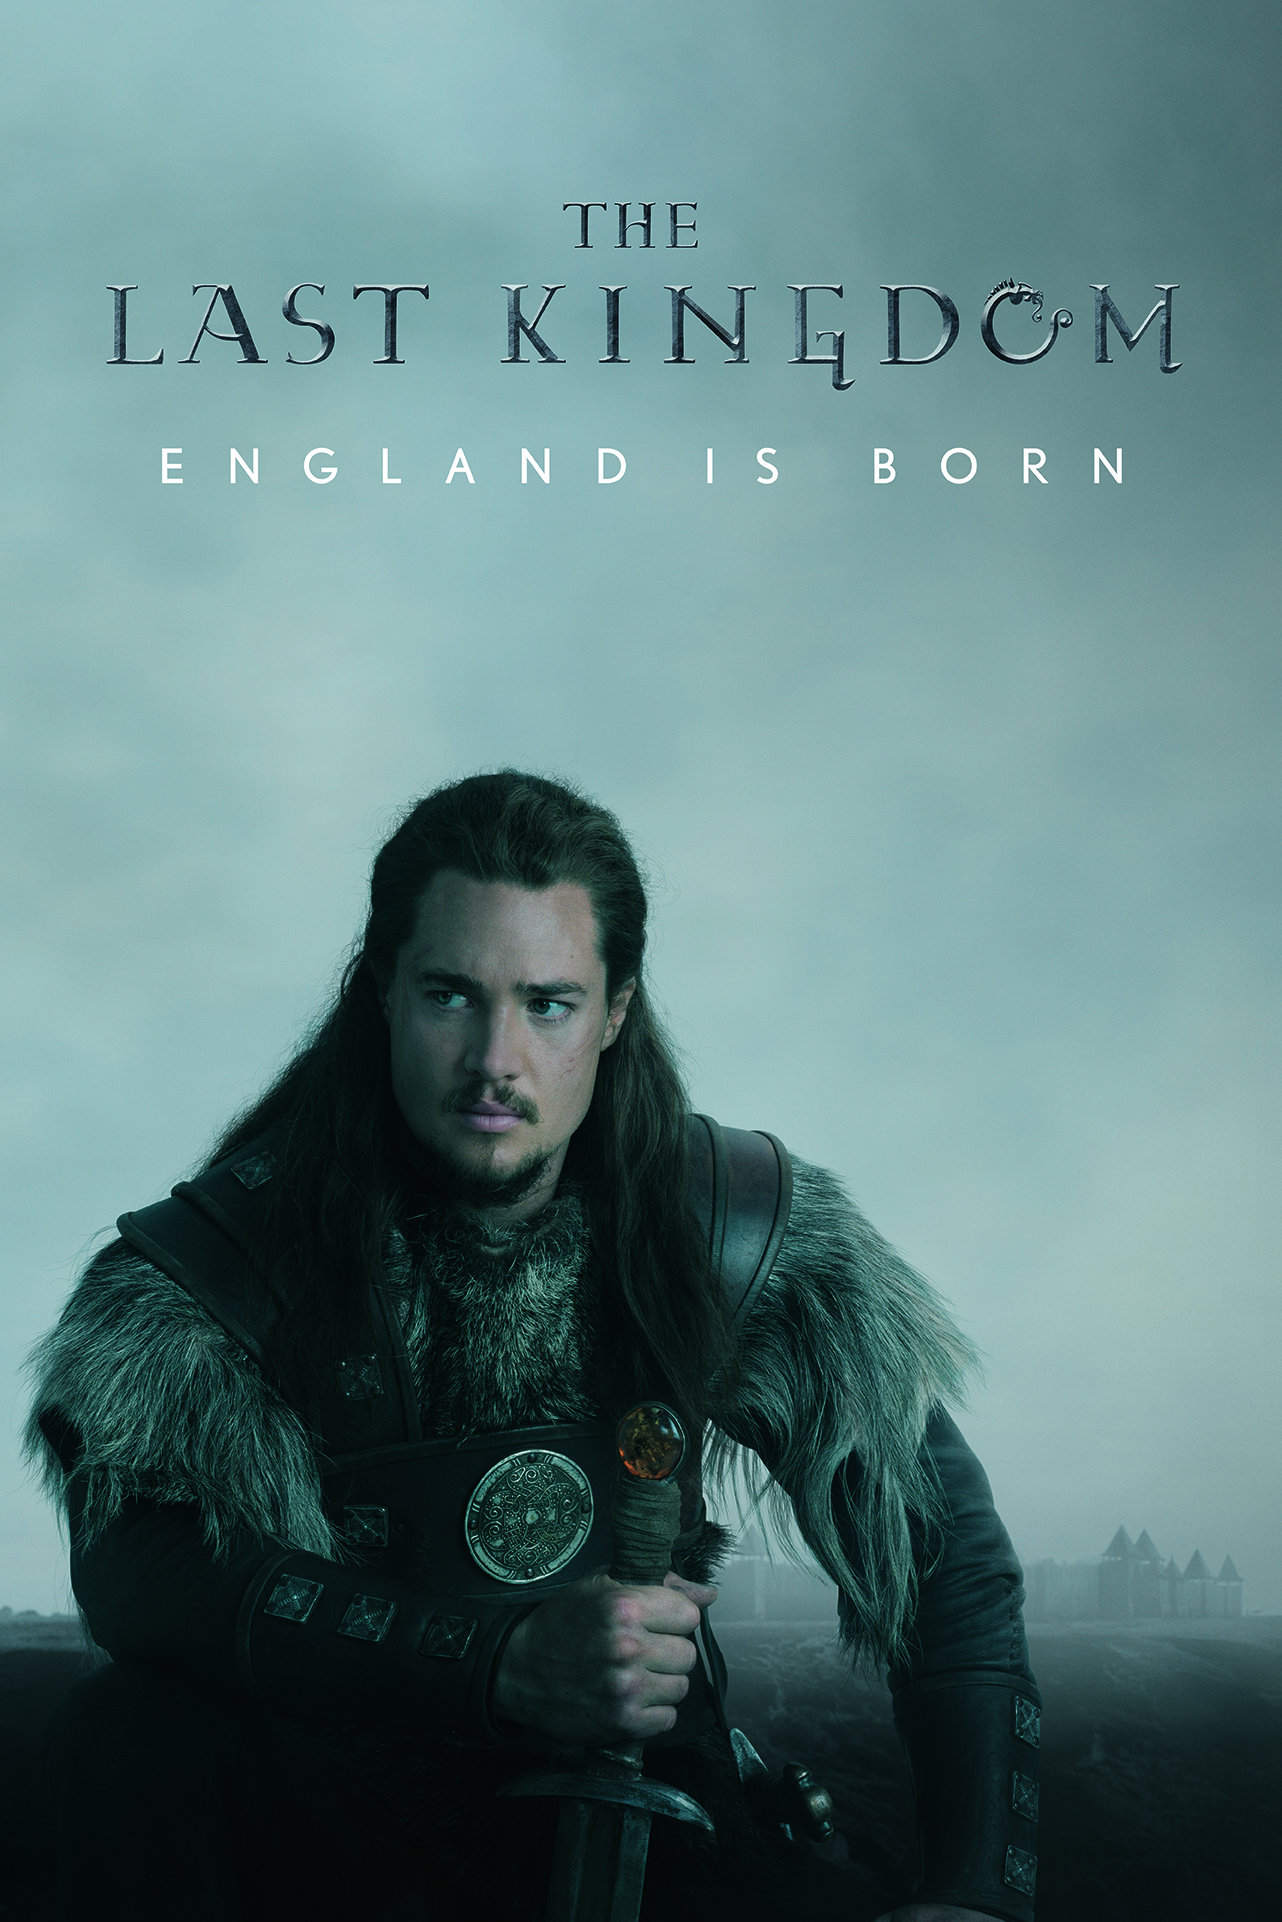 The Last Kingdom (2015) Technical Specifications